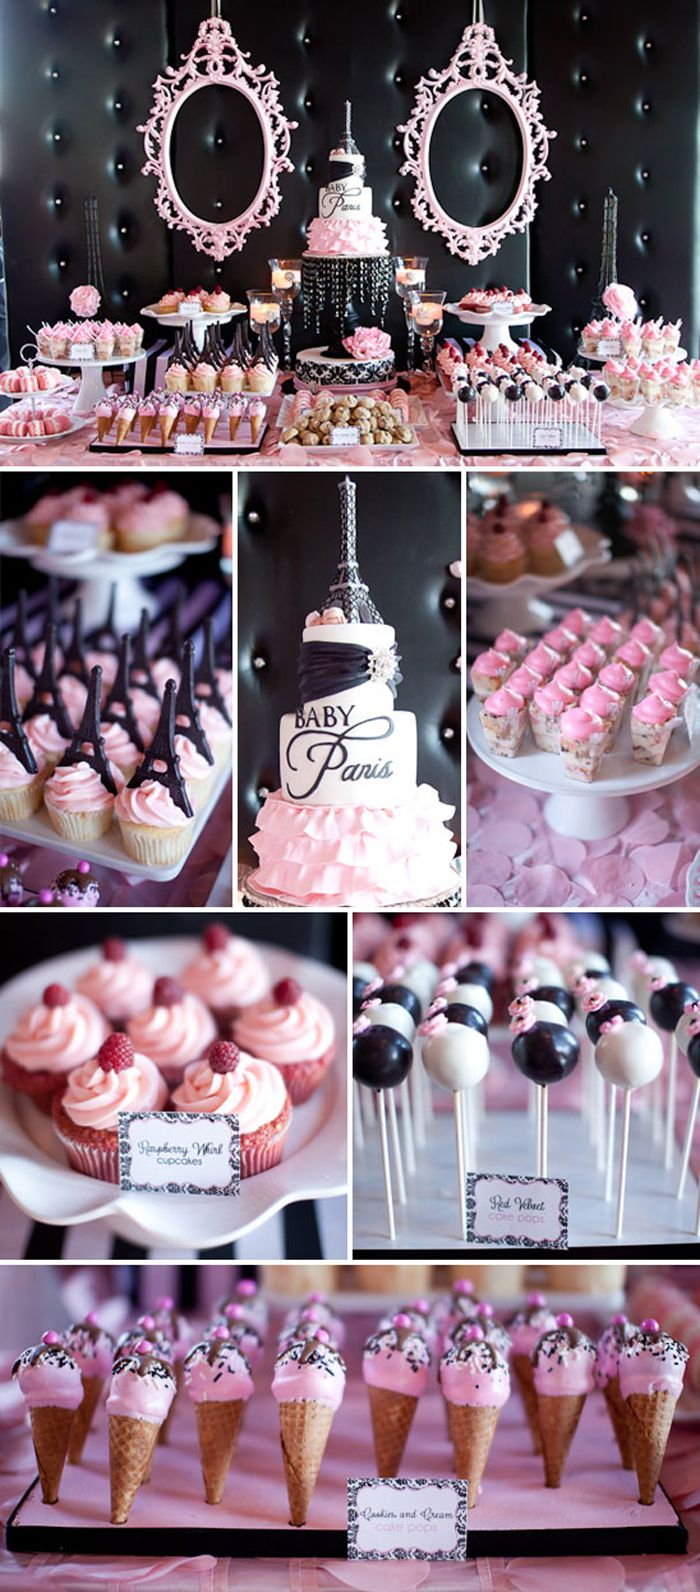 best 25+ paris party decorations ideas on pinterest | paris theme